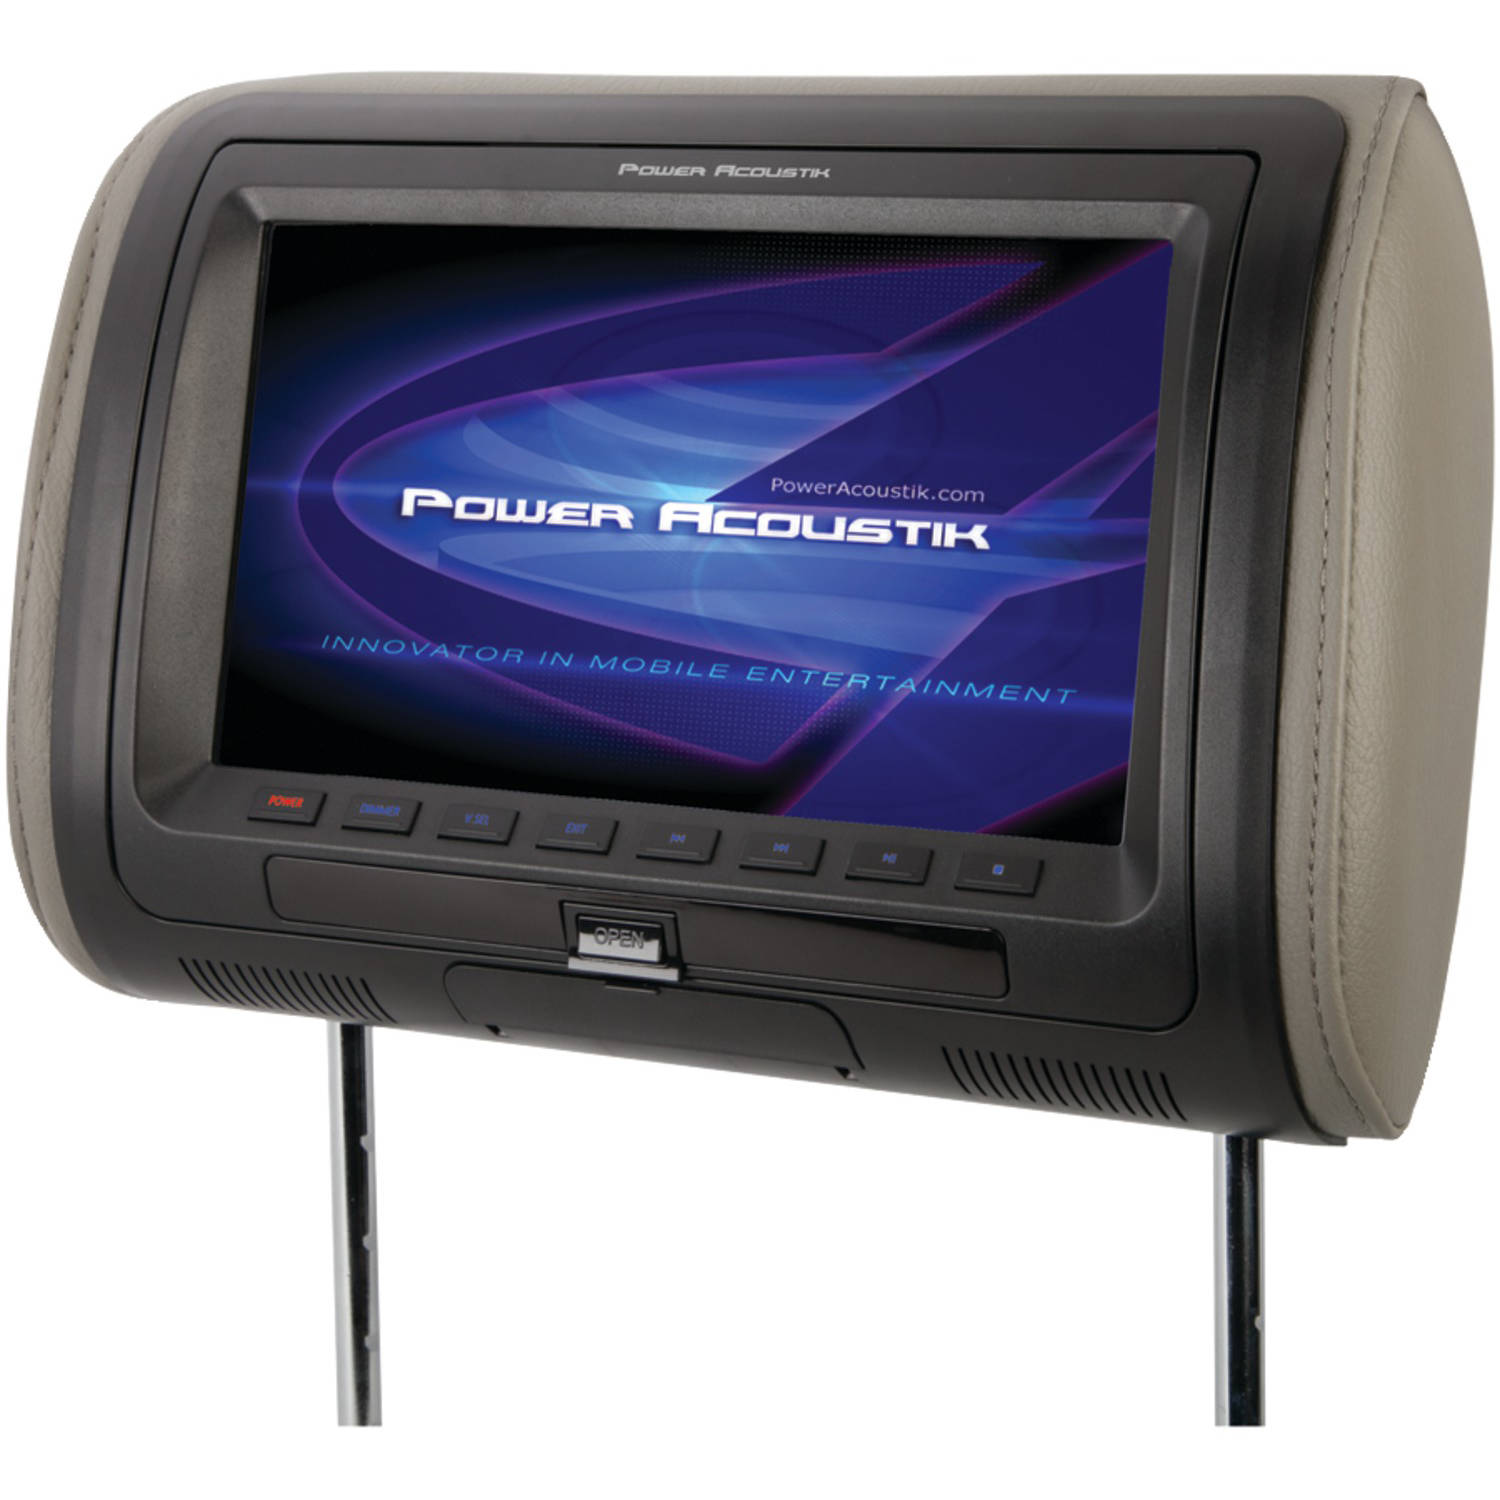 "Power Acoustik HDVD71HD 7"" Universal Headrest Monitor with MHL MobileLink and Interchangeable Skins with DVD Player"